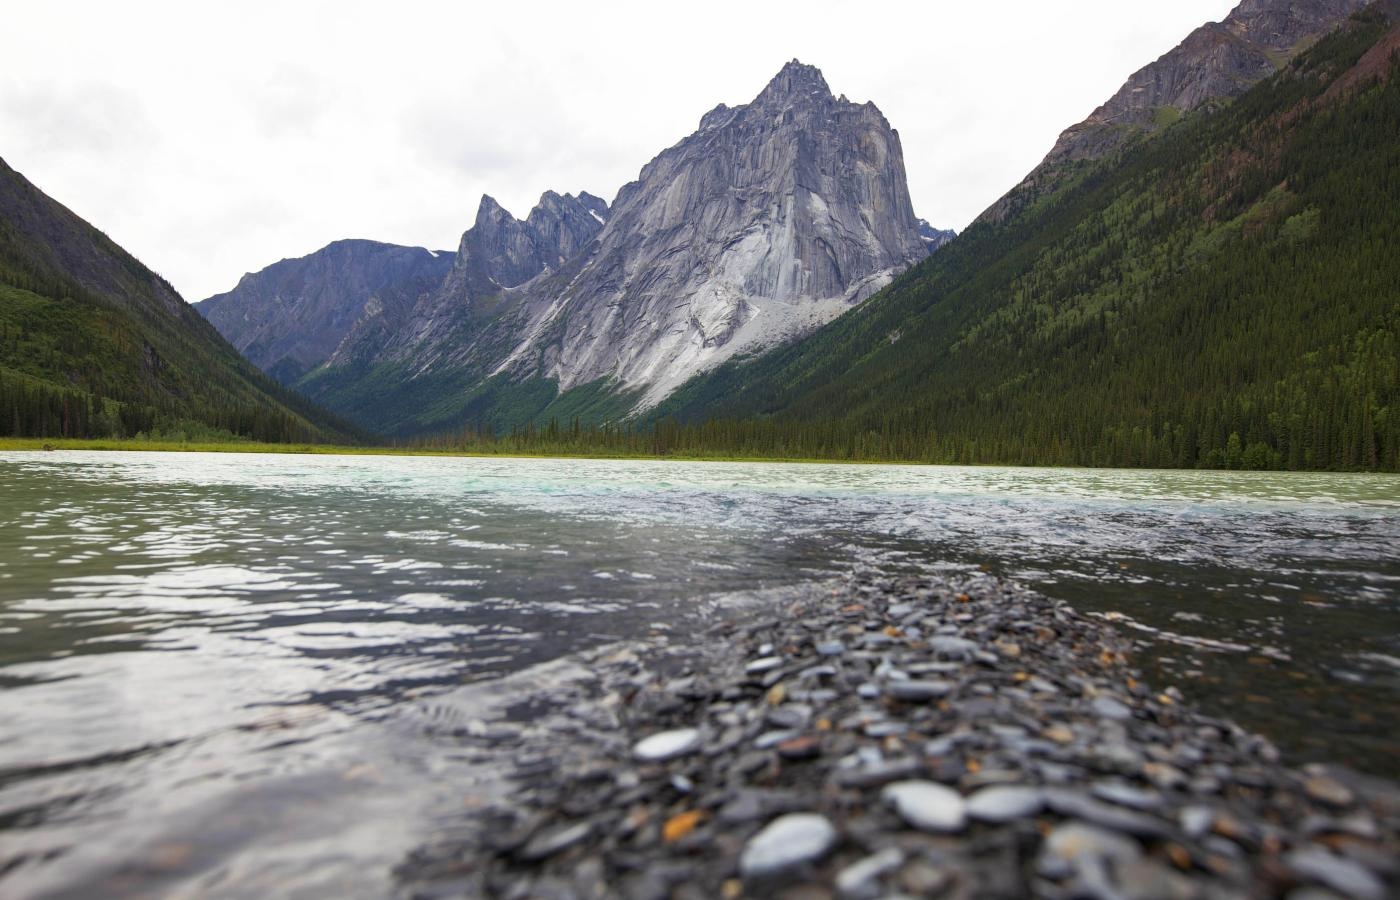 A mountain peak rises above a glacier lake in the Nahanni